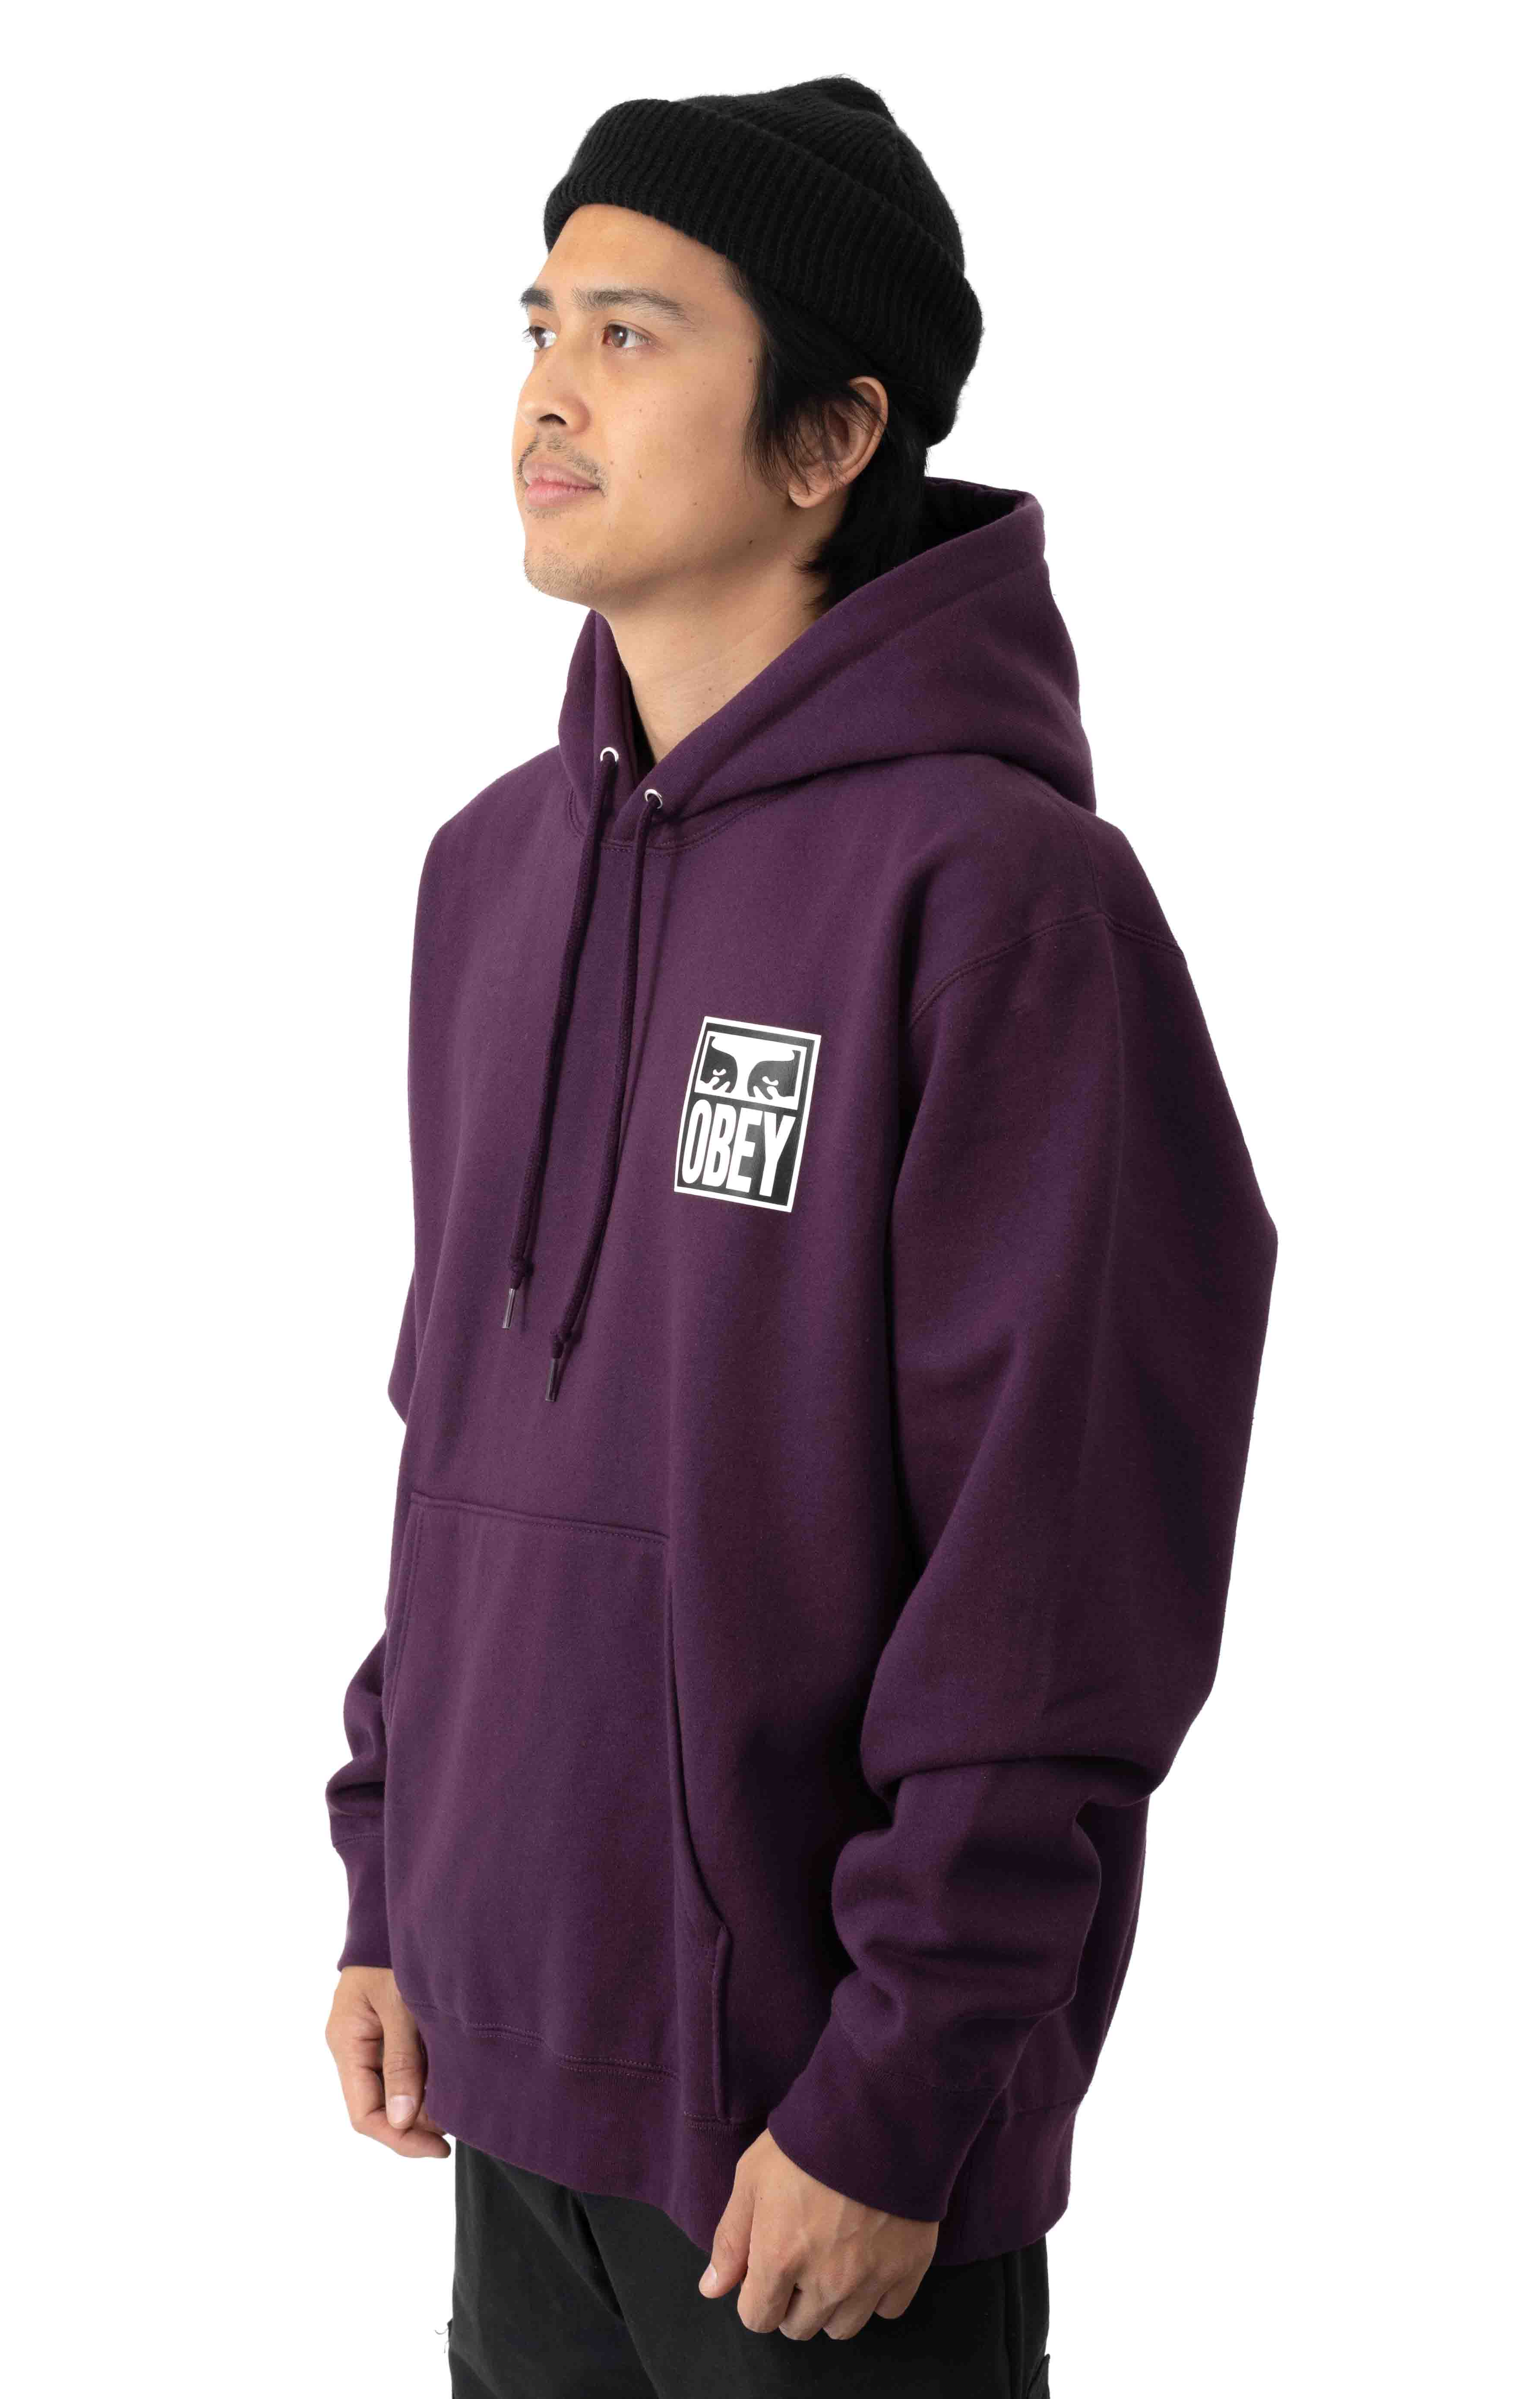 Eyes Icon 2 Pullover Hoodie - Blackberry Wine 2